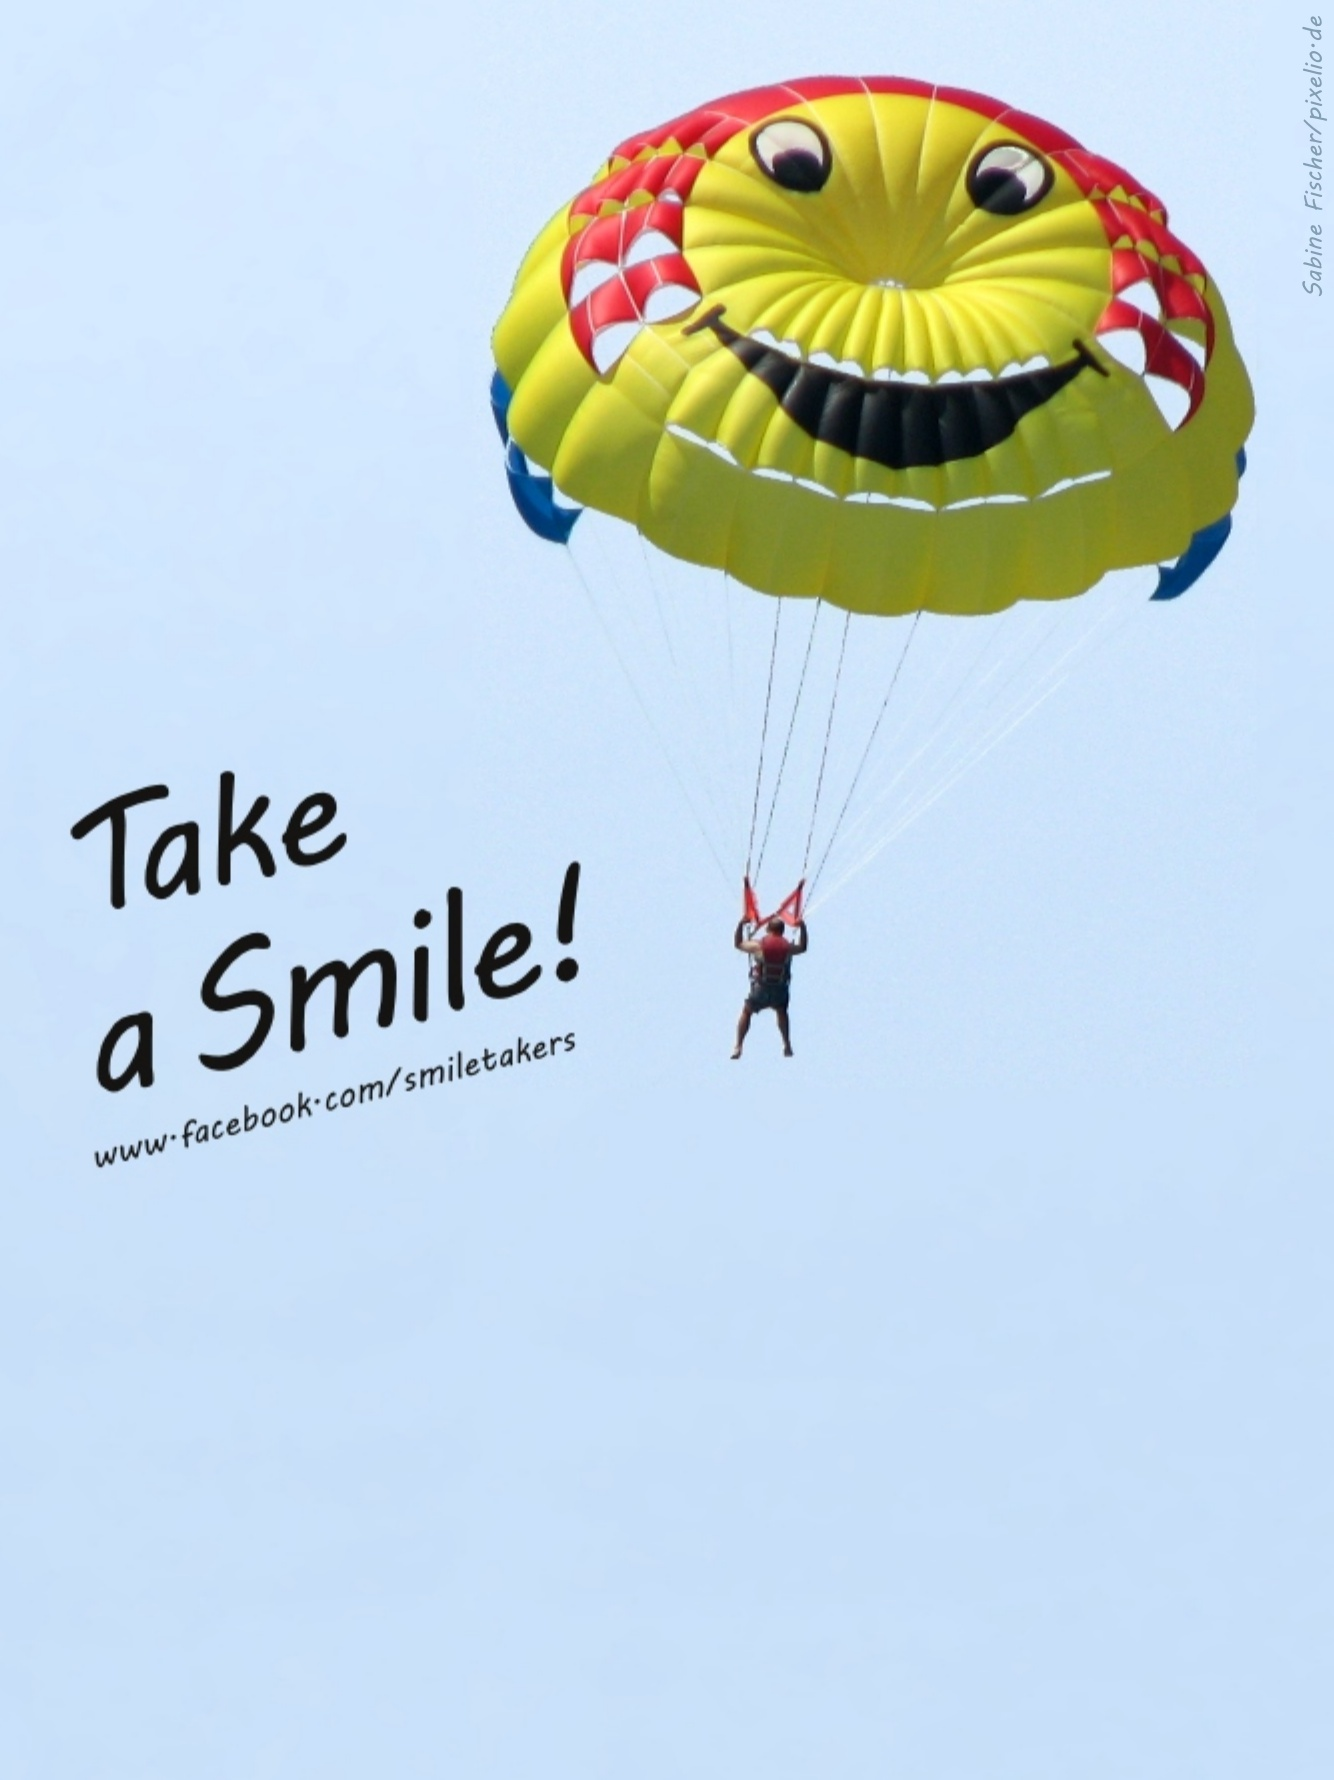 Take a smile - image